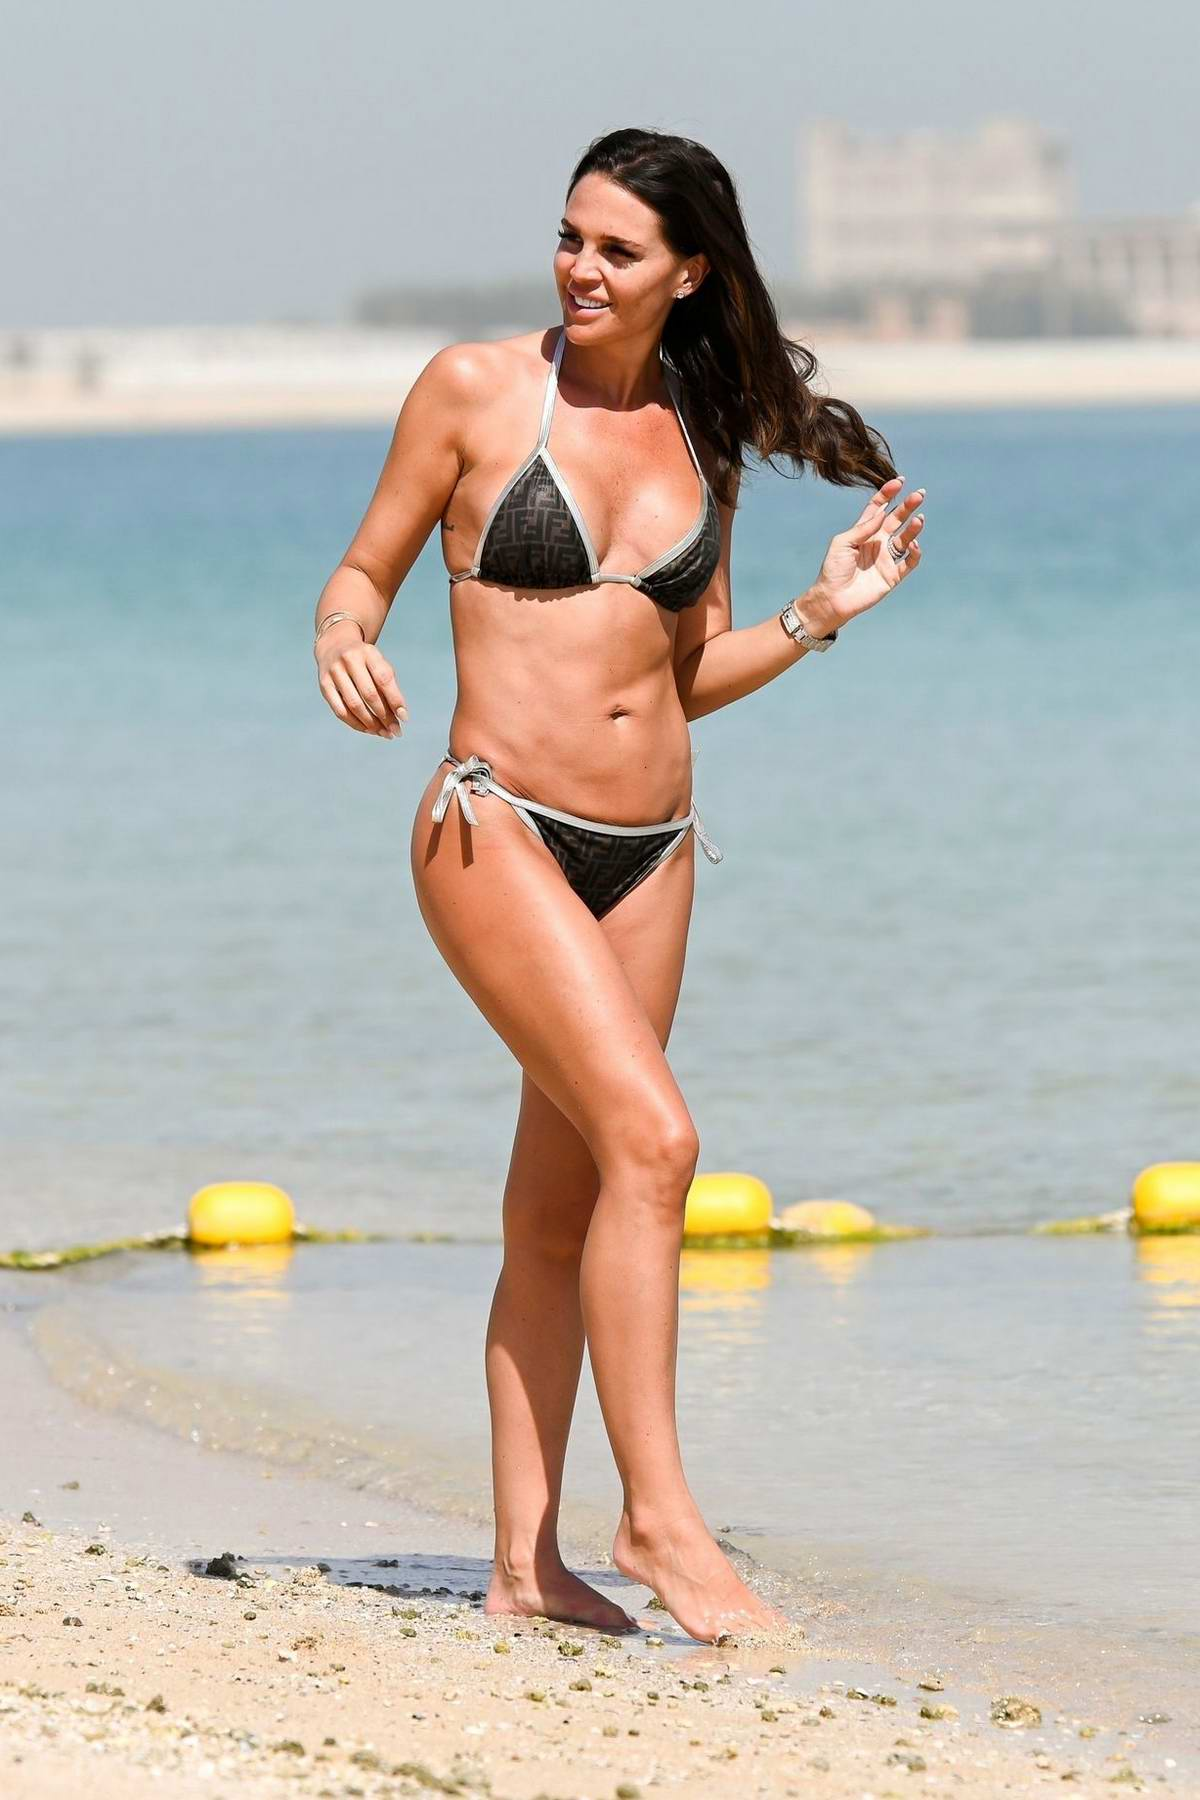 Danielle Lloyd wears a Fendi bikini as she takes a shower after a dip in the sea in Dubai, UAE